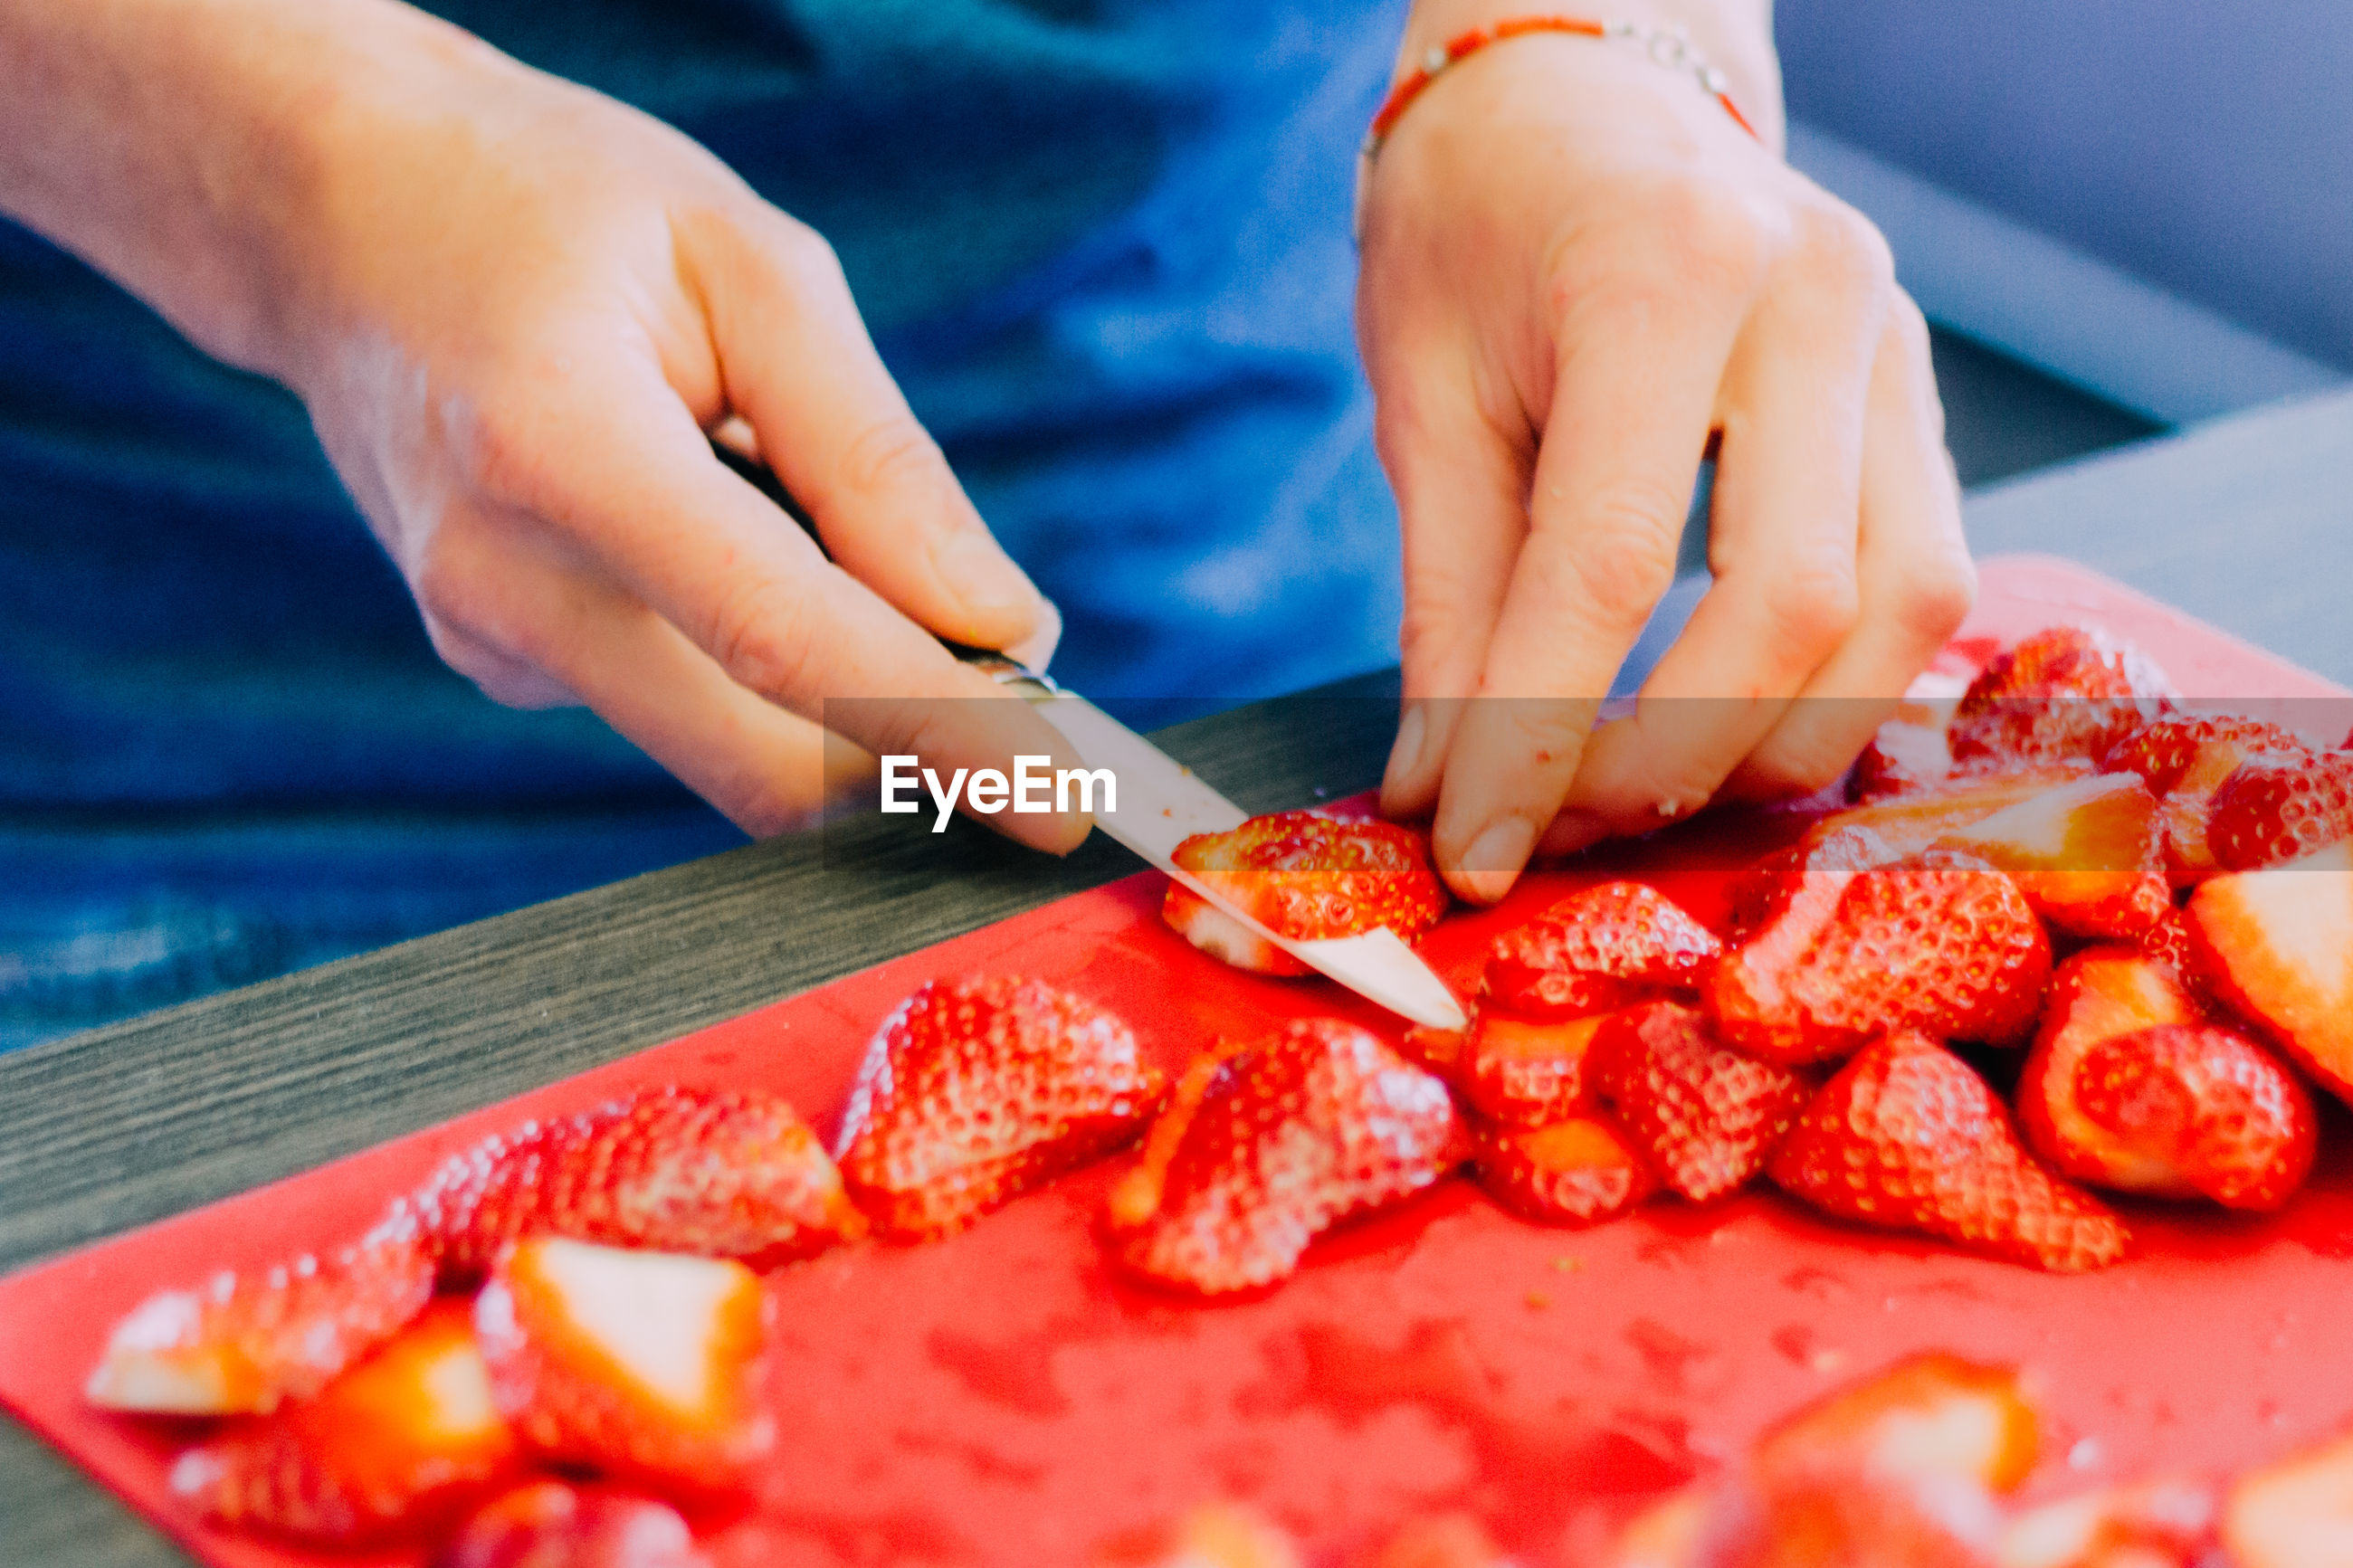 Close-up of hand slicing strawberries